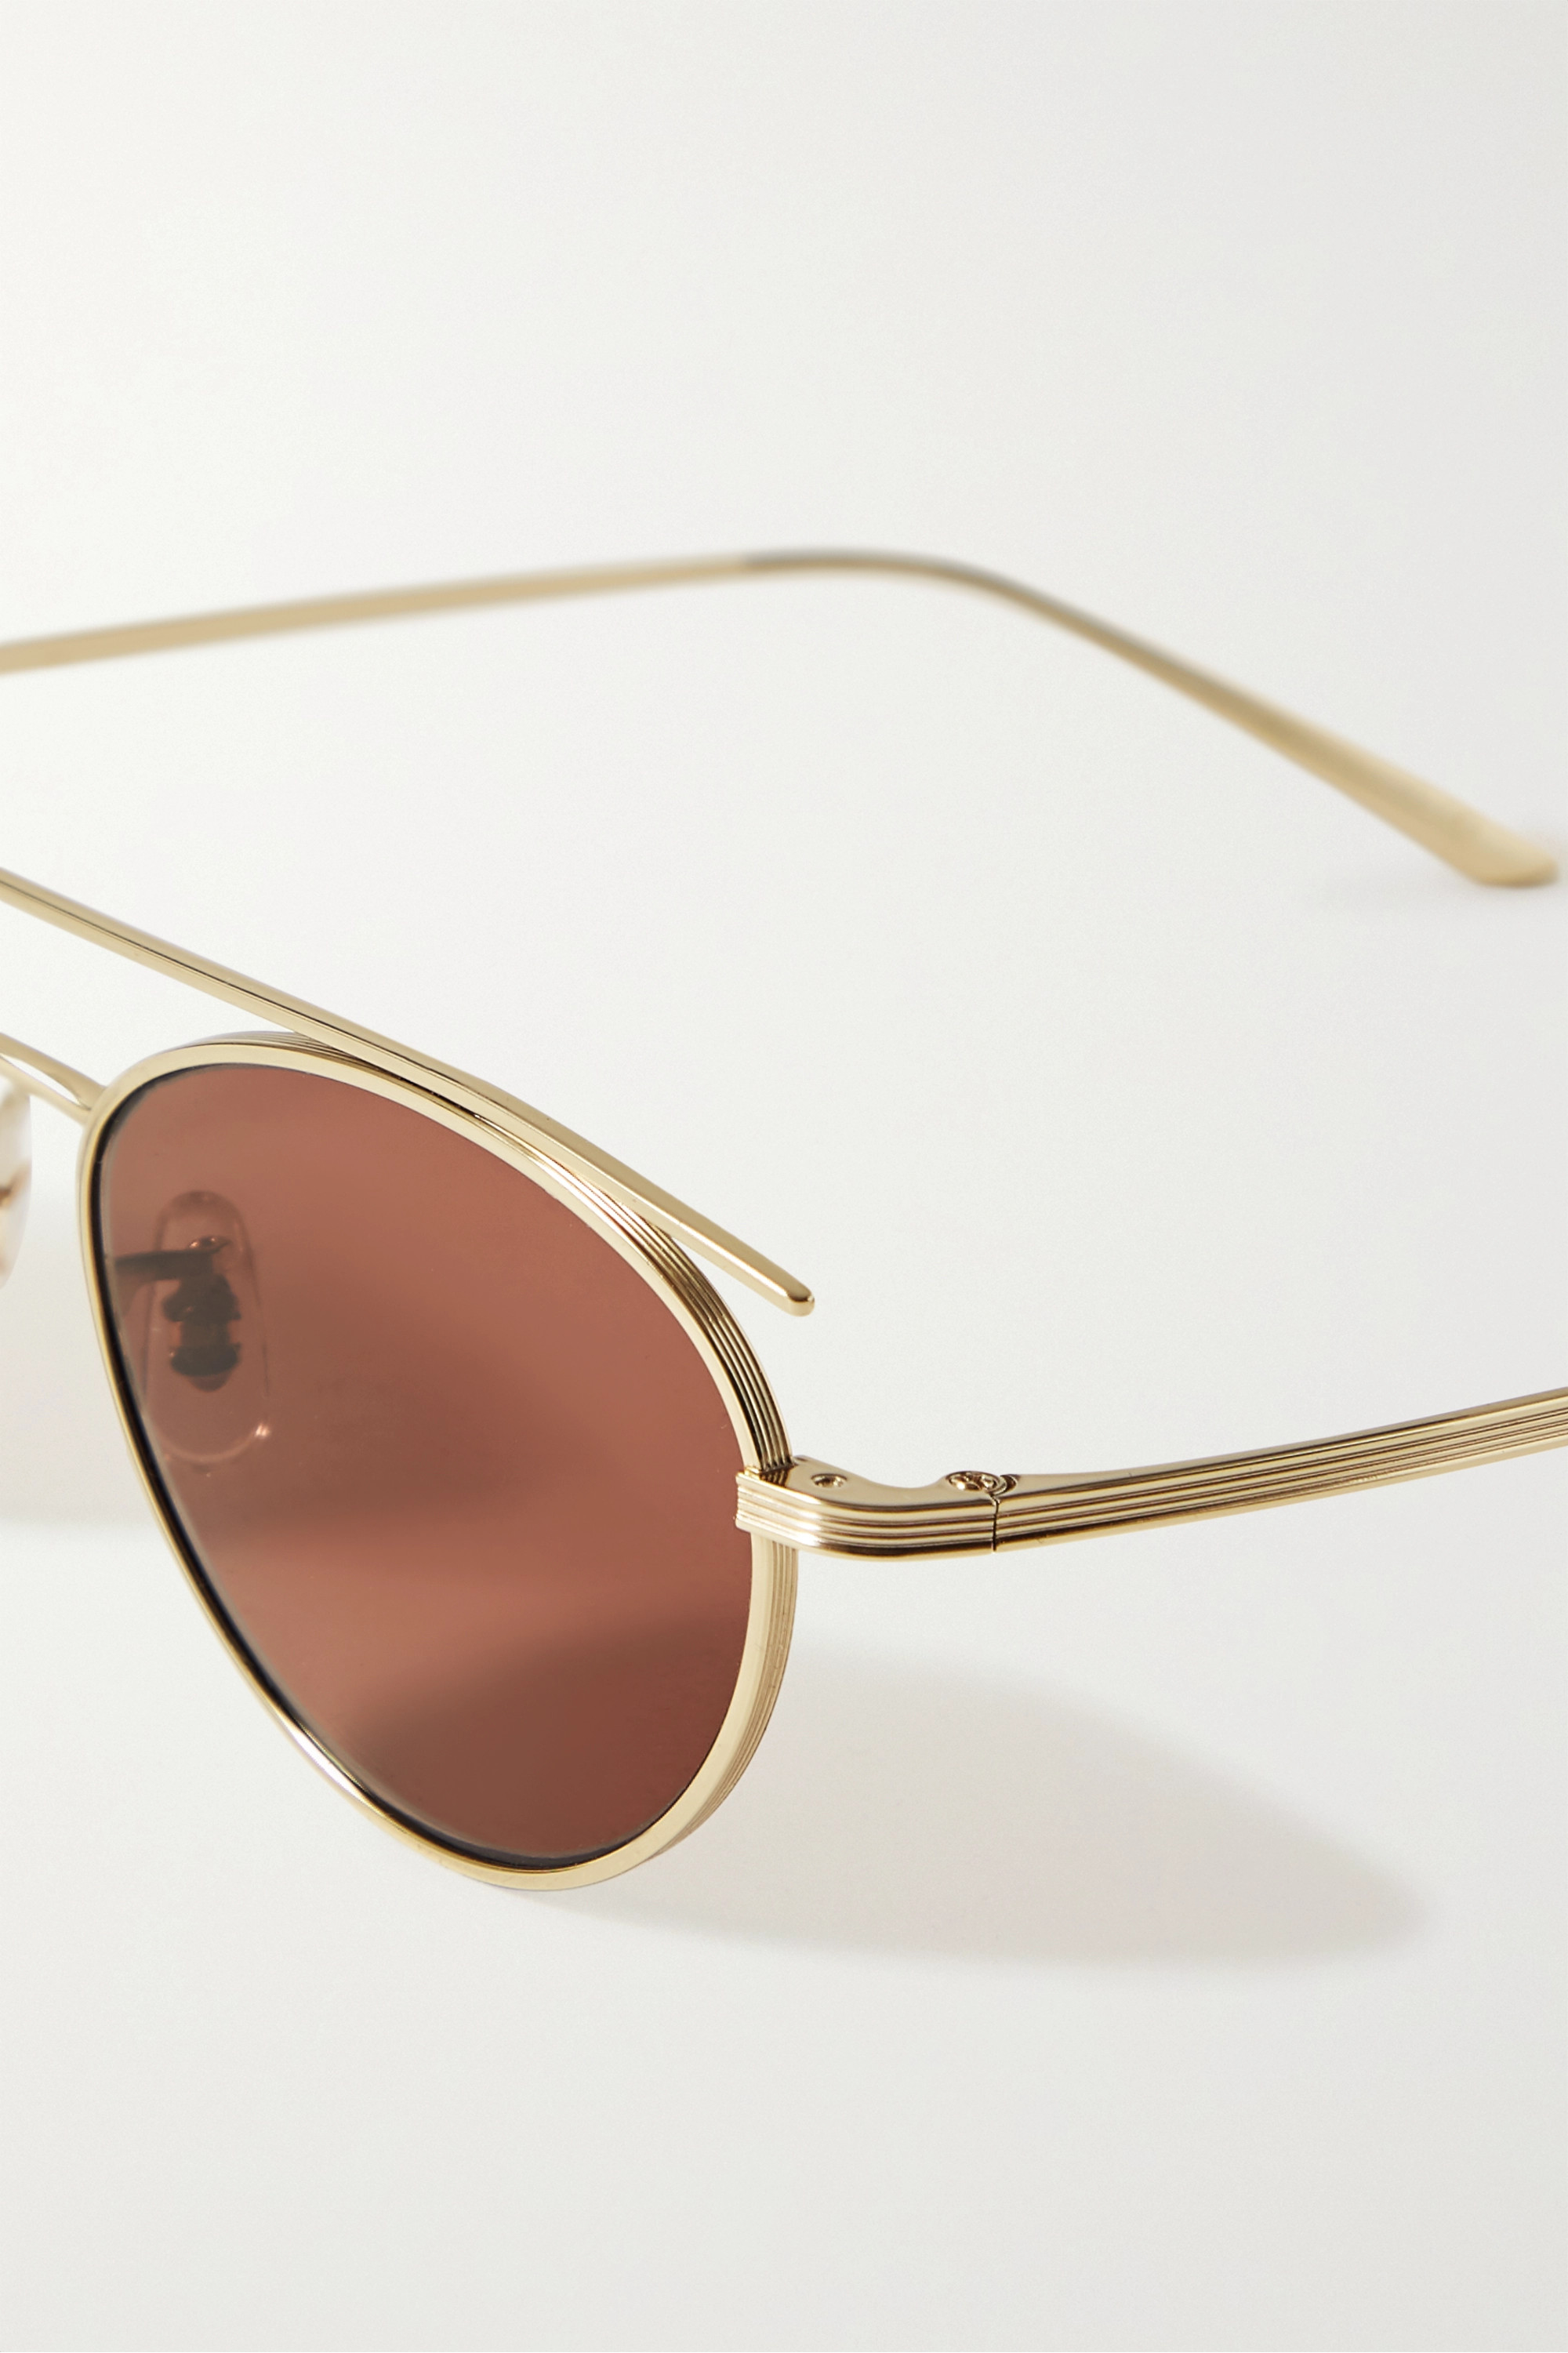 "The Row x Oliver Peoples ""Hightree"" 金色金属圆框太阳镜"